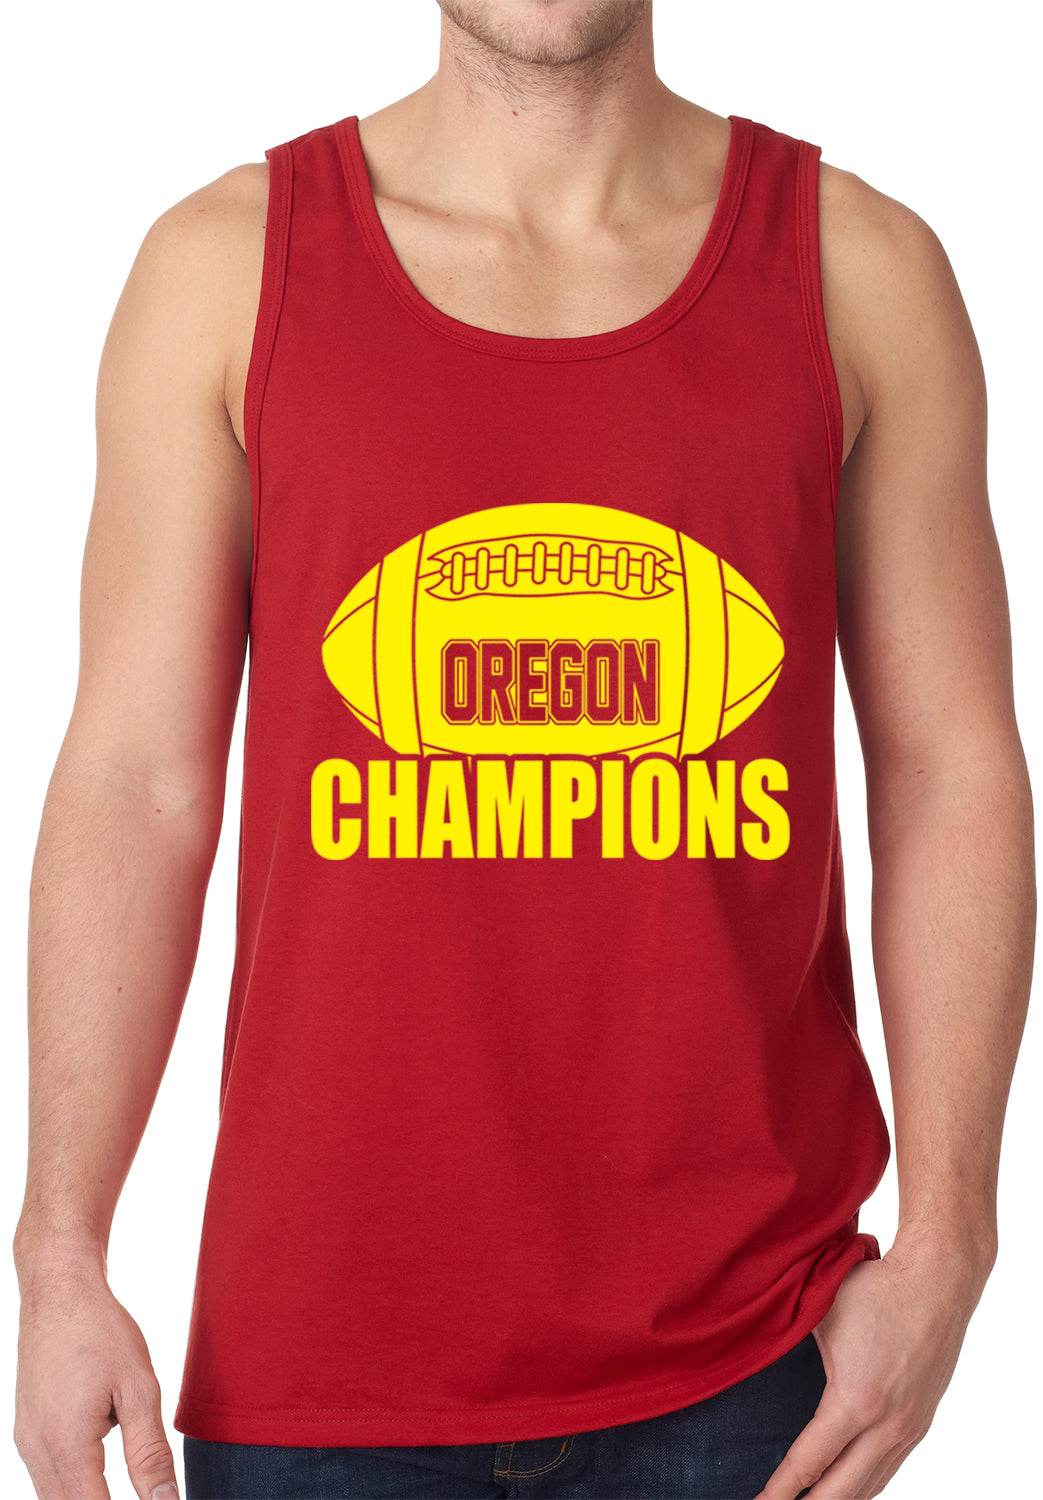 Oregon Football Champions Tank Top